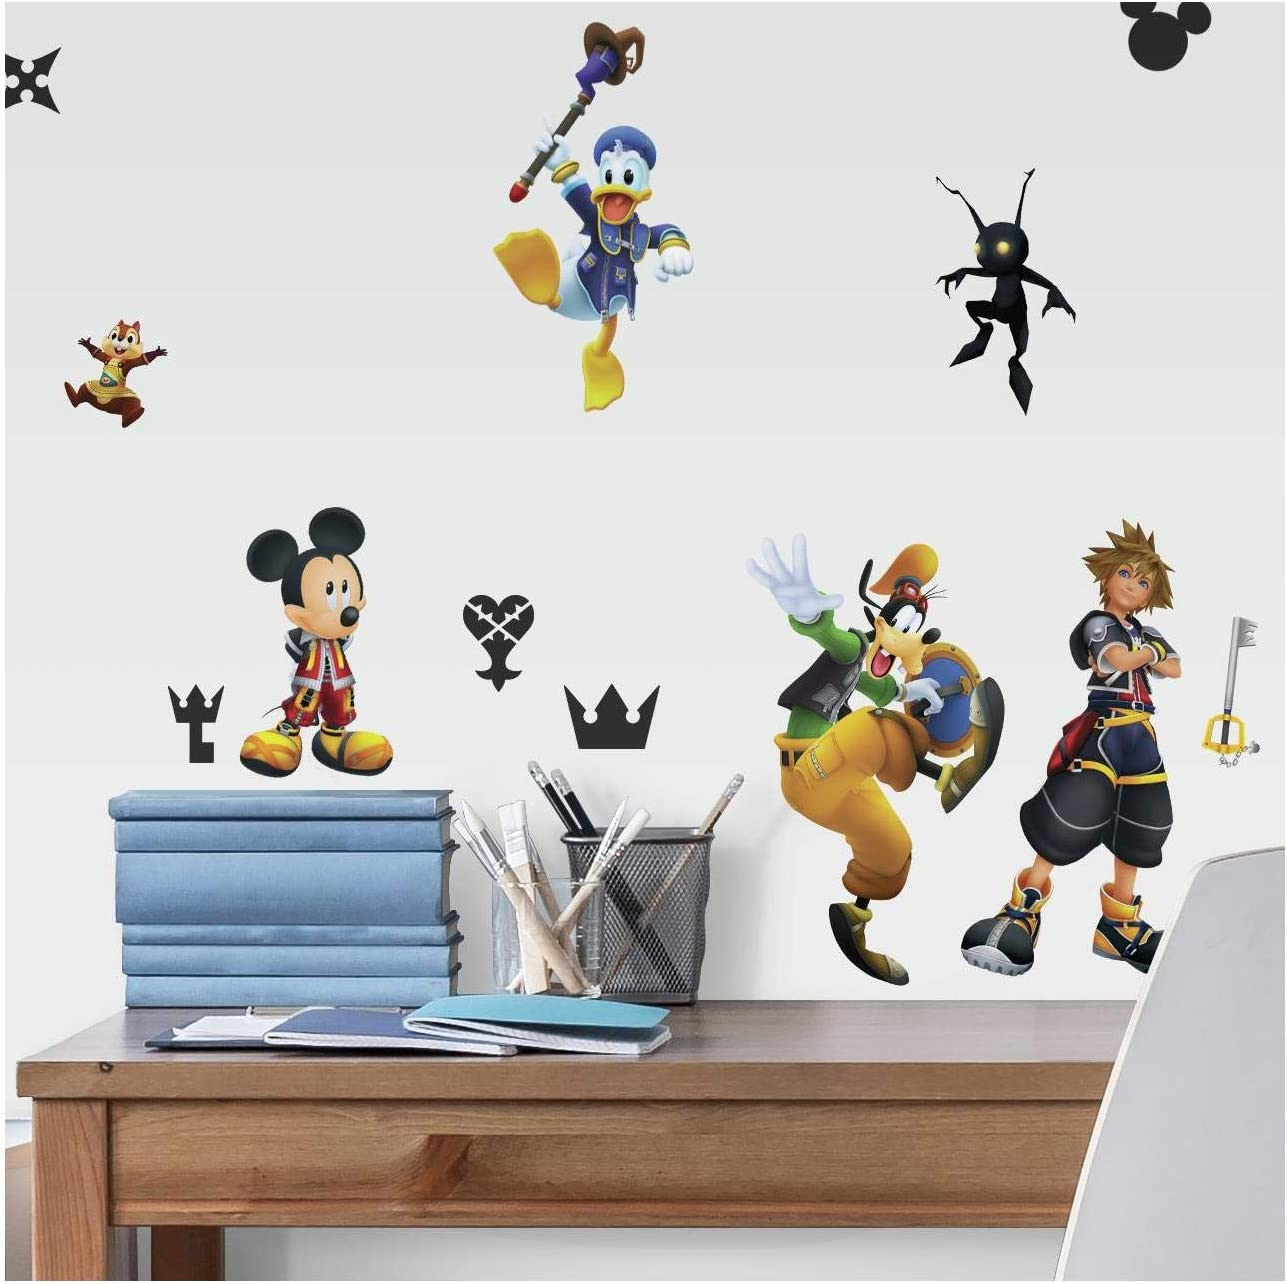 RoomMates Kingdom Hearts Peel And Stick Wall Decals